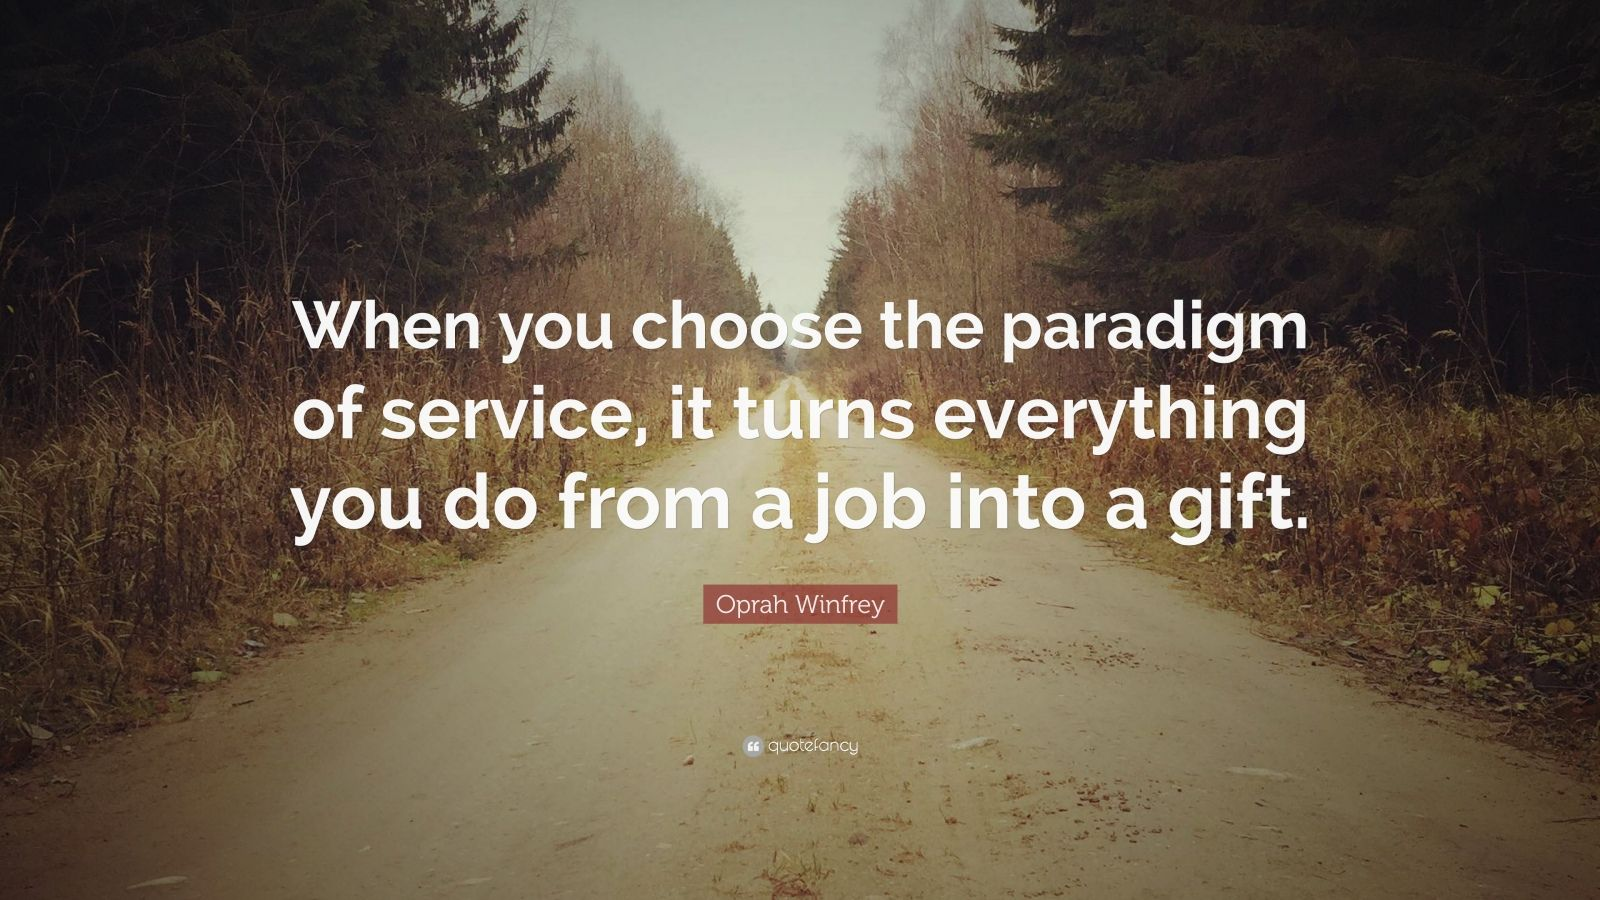 """Oprah Winfrey Quote: """"When you choose the paradigm of service, it turns everything you do from a job into a gift."""""""